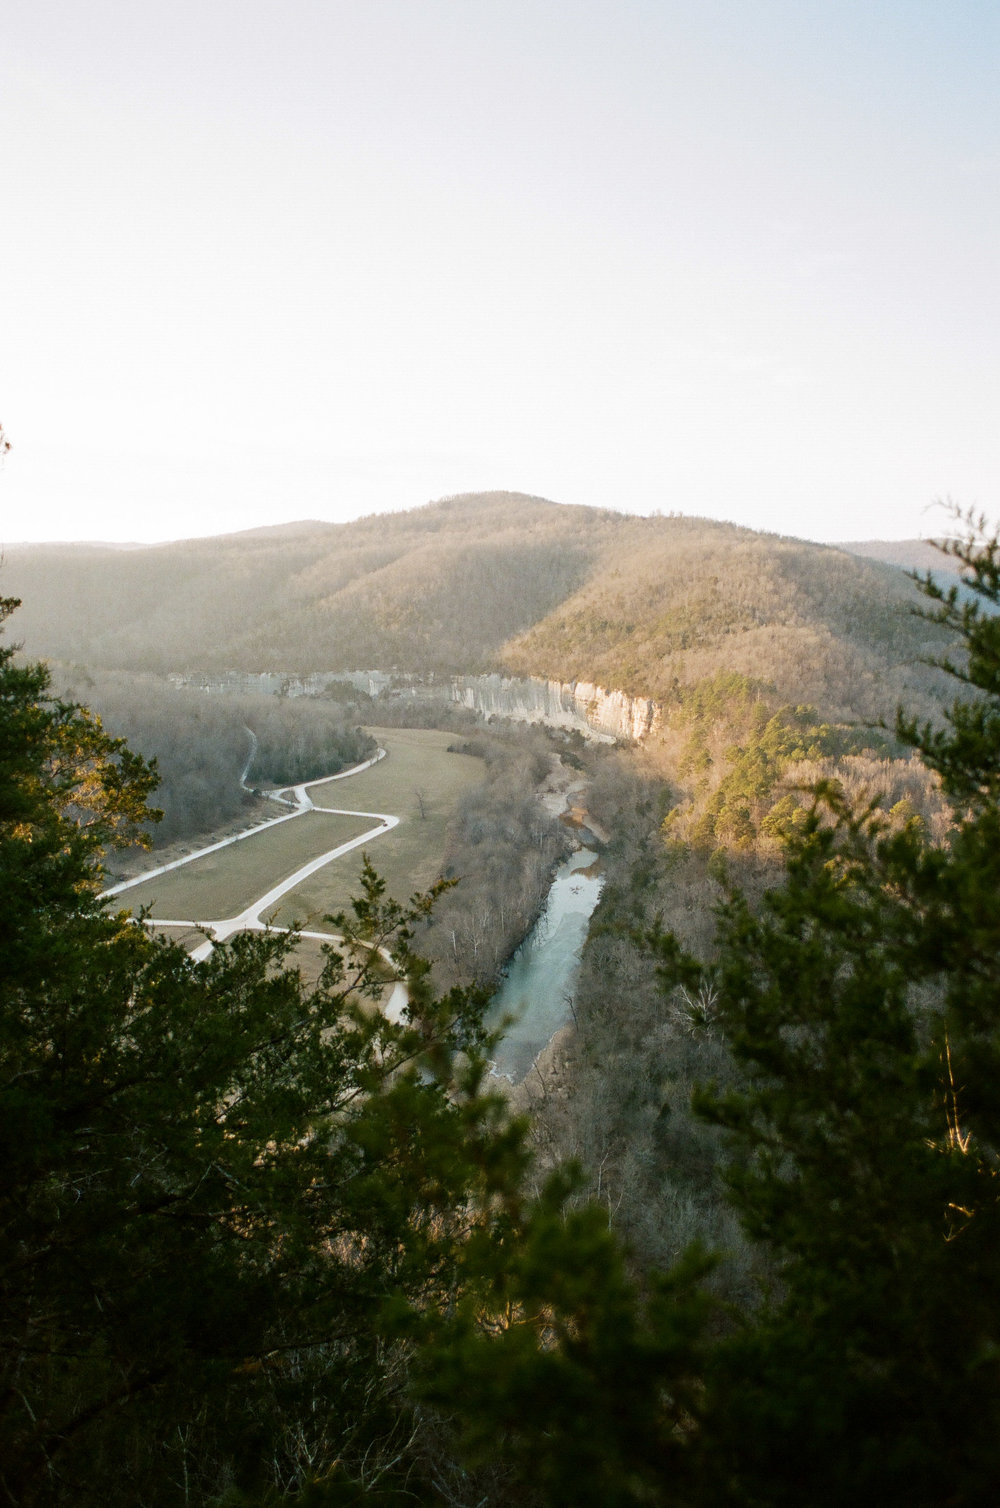 Portra 400 - Canon AE-1 - 24mm 2.8 Over the Steel Creek Campground / Buffalo National River